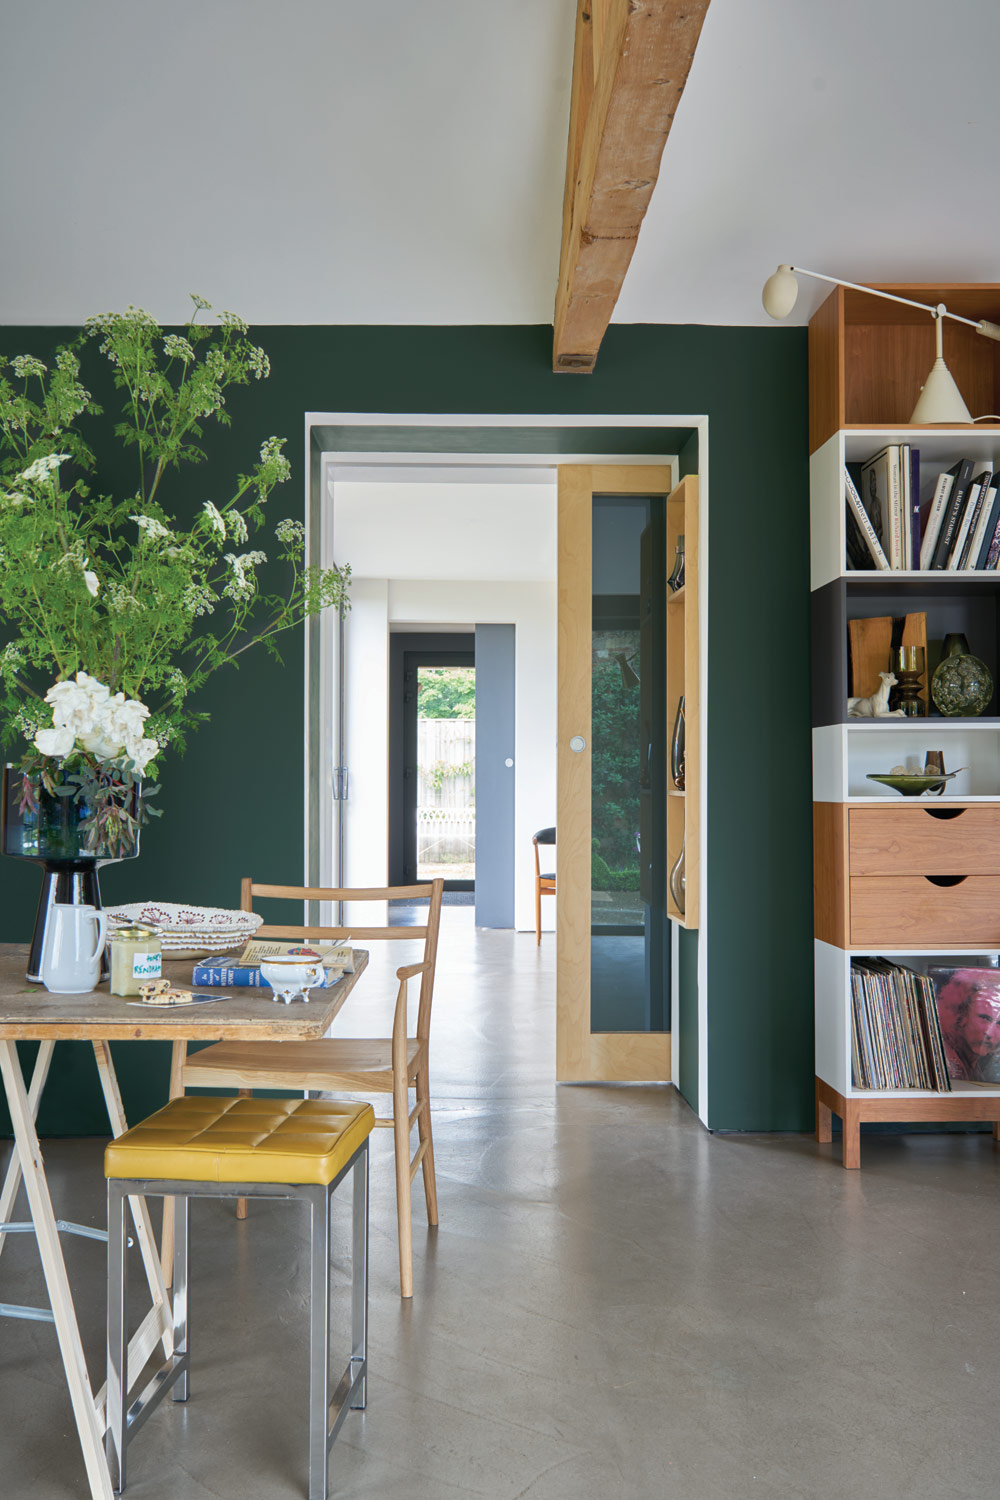 4. Farrow & Ball -Studio Green - Next in our roundup of paint trends is the darkest of Farrow & Ball's green hues, Studio Green. We love the contemporary update of this typically heritage hue, one that will create depth in contemporary spaces and also bring to life period features. Although the darkness of this colour may initially be overwhelming, Farrow & Ball explain that the rich pigments respond extraordinarily to different lights in the home, appearing lighter and greener in brighter situations and almost black in darker corners and less well lit spaces. This ensures that it will never look flat or too harsh in tone, and we love it!£43.50 for 2.5L Estate Emulsionwww.farrow-ball.com